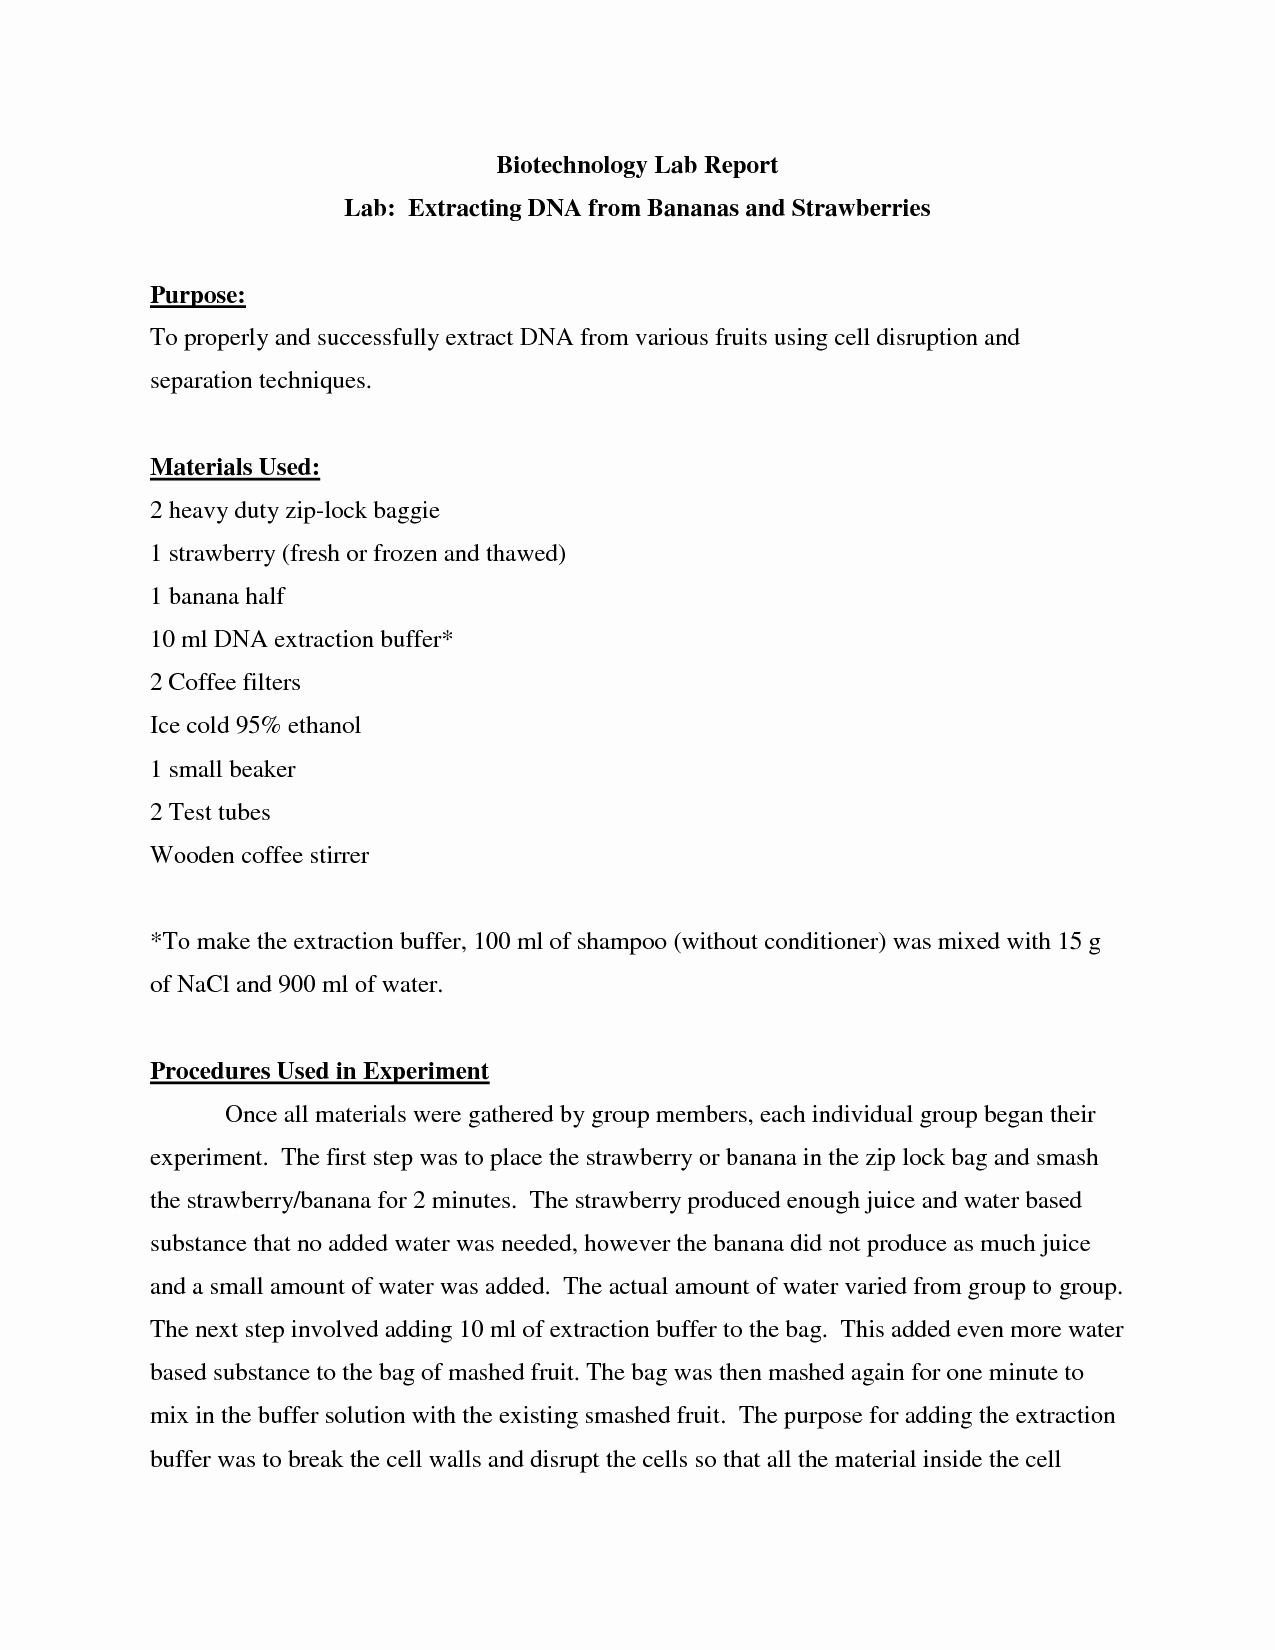 Strawberry Dna Extraction Lab Worksheet Elegant Dna Extraction Lab Report Extracting Ion Dna 2019 02 17